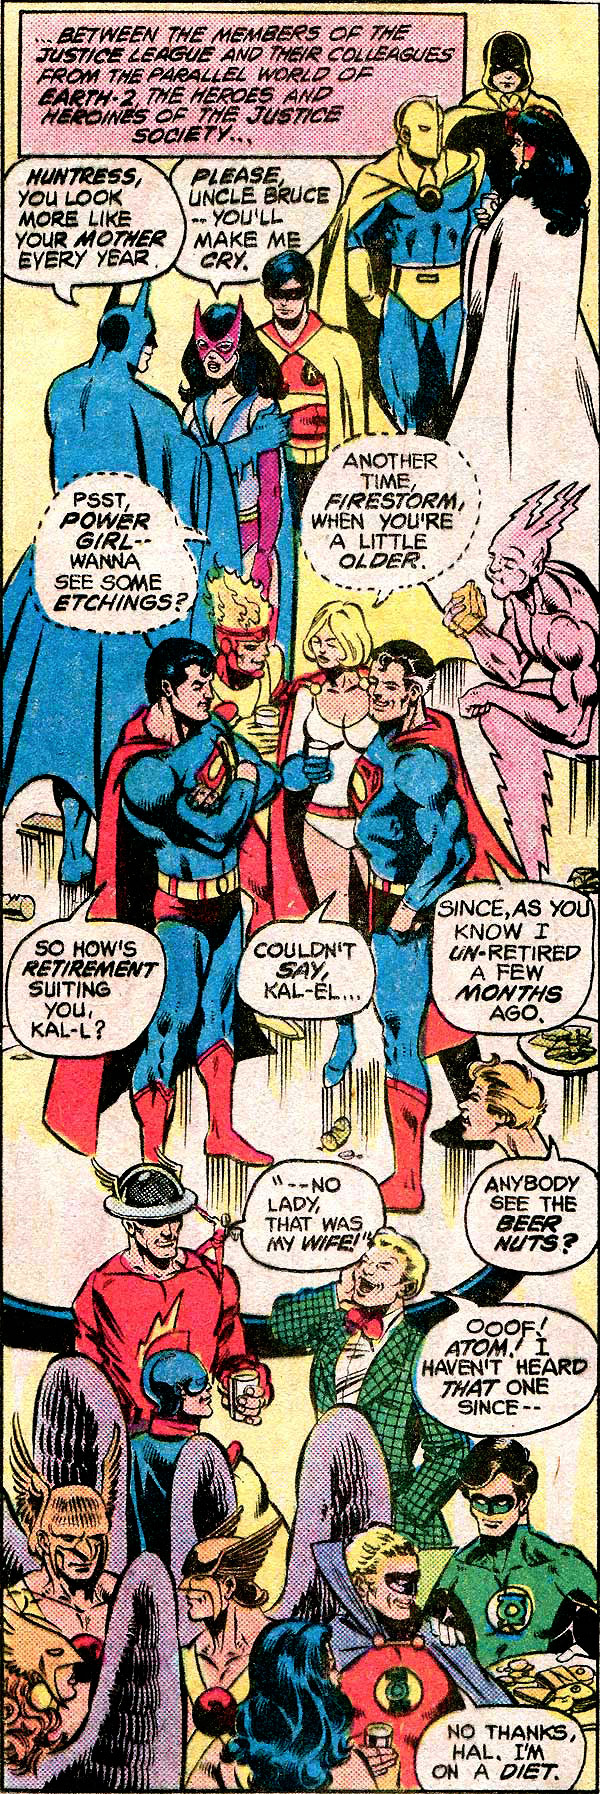 Power Girl and Firestorm romantic flirting - Justice League of America #195 by George Perez